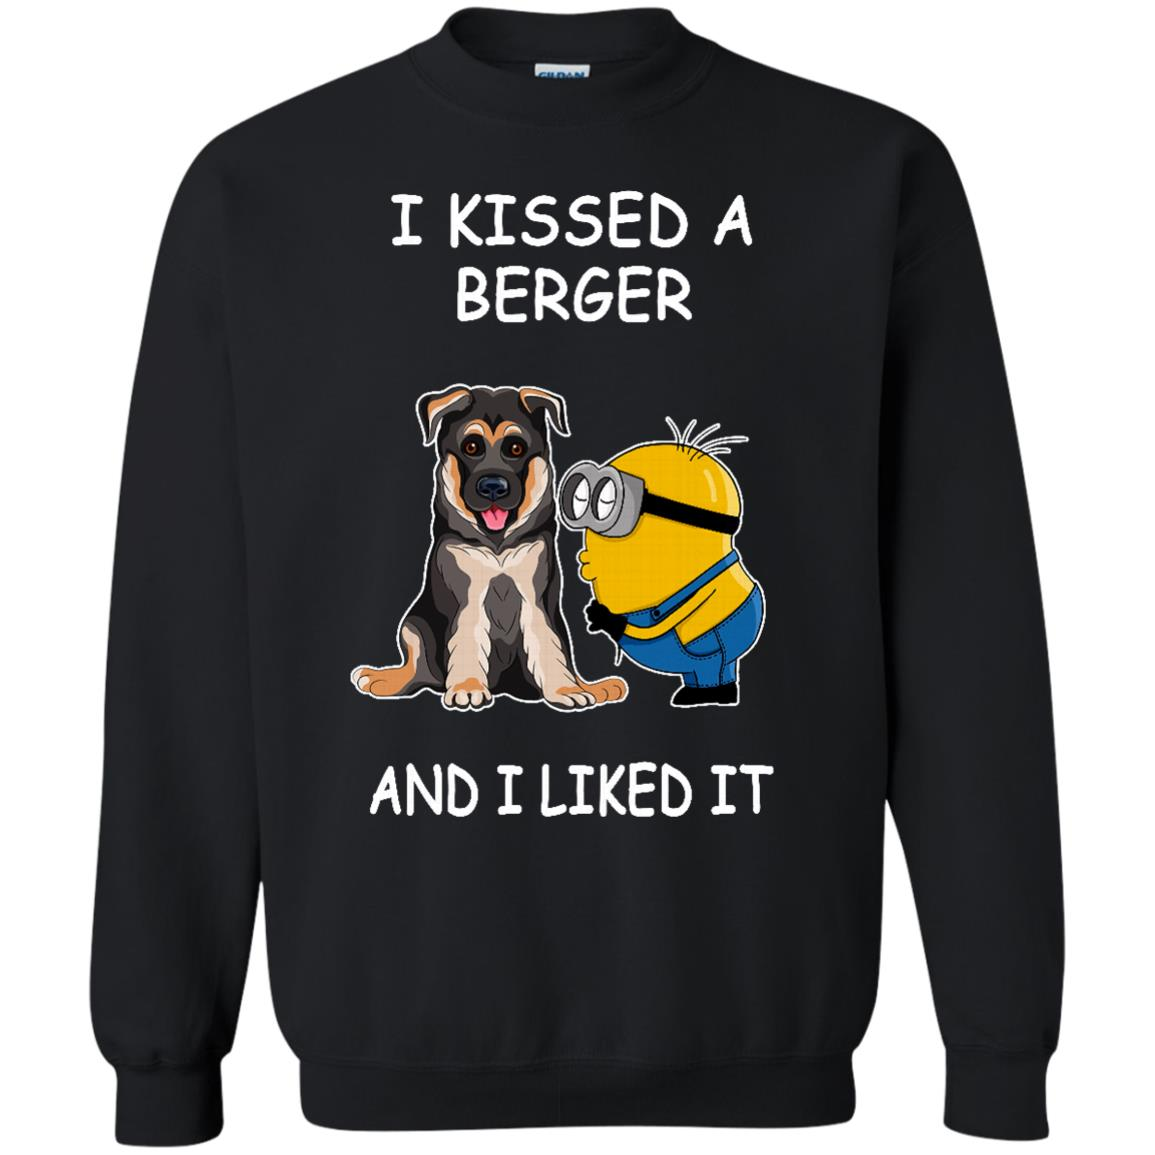 Berger Minion T shirts Kissed A Berger And I Liked It Hoodies Sweatshirts